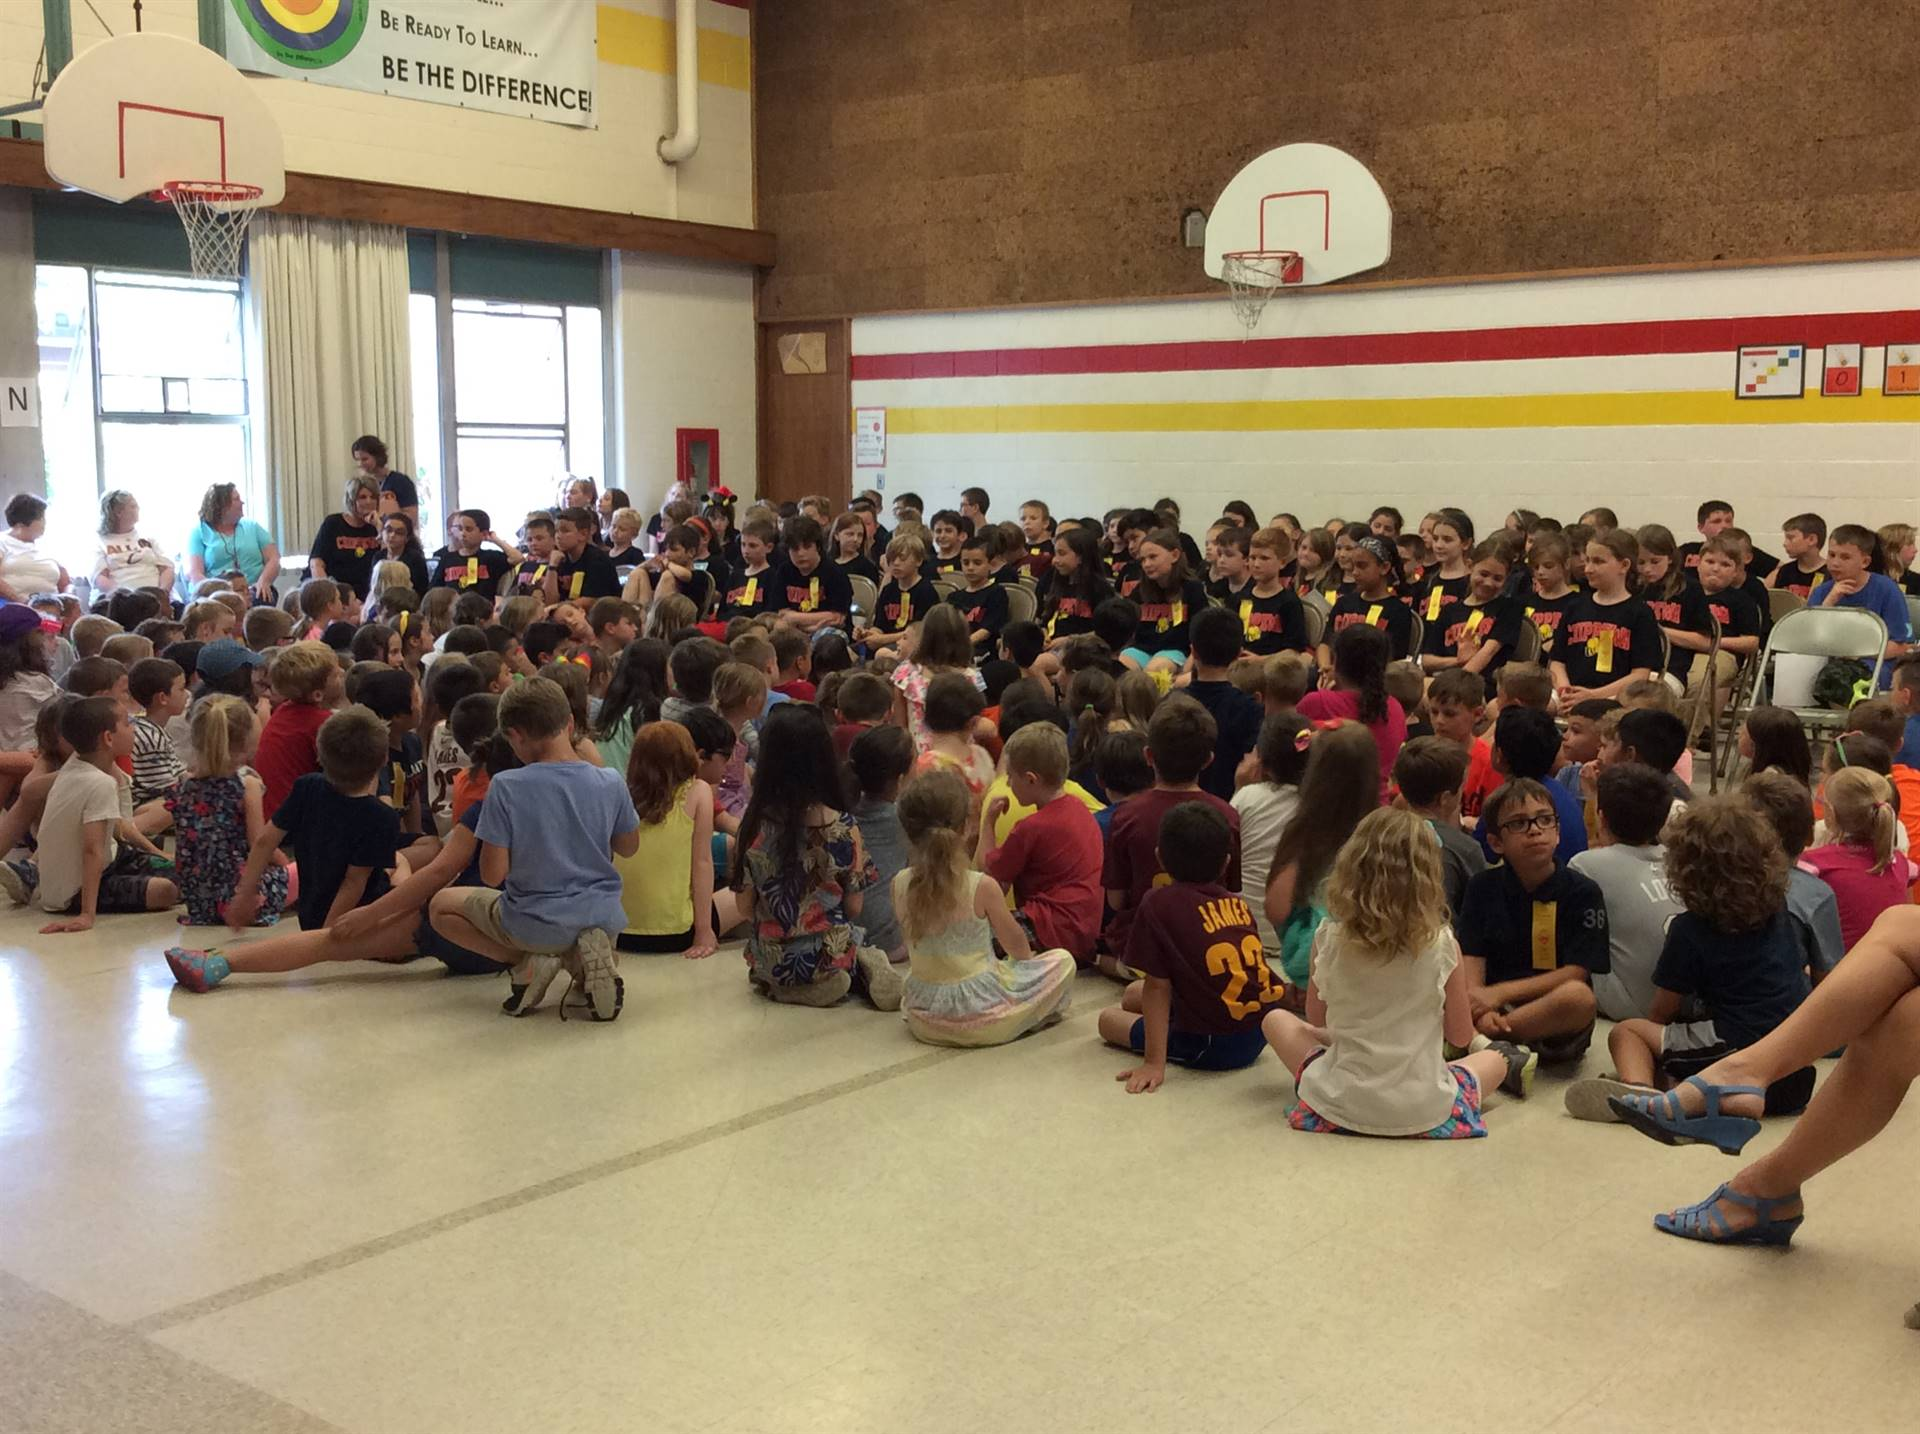 Younger students look to leadership of Third Graders